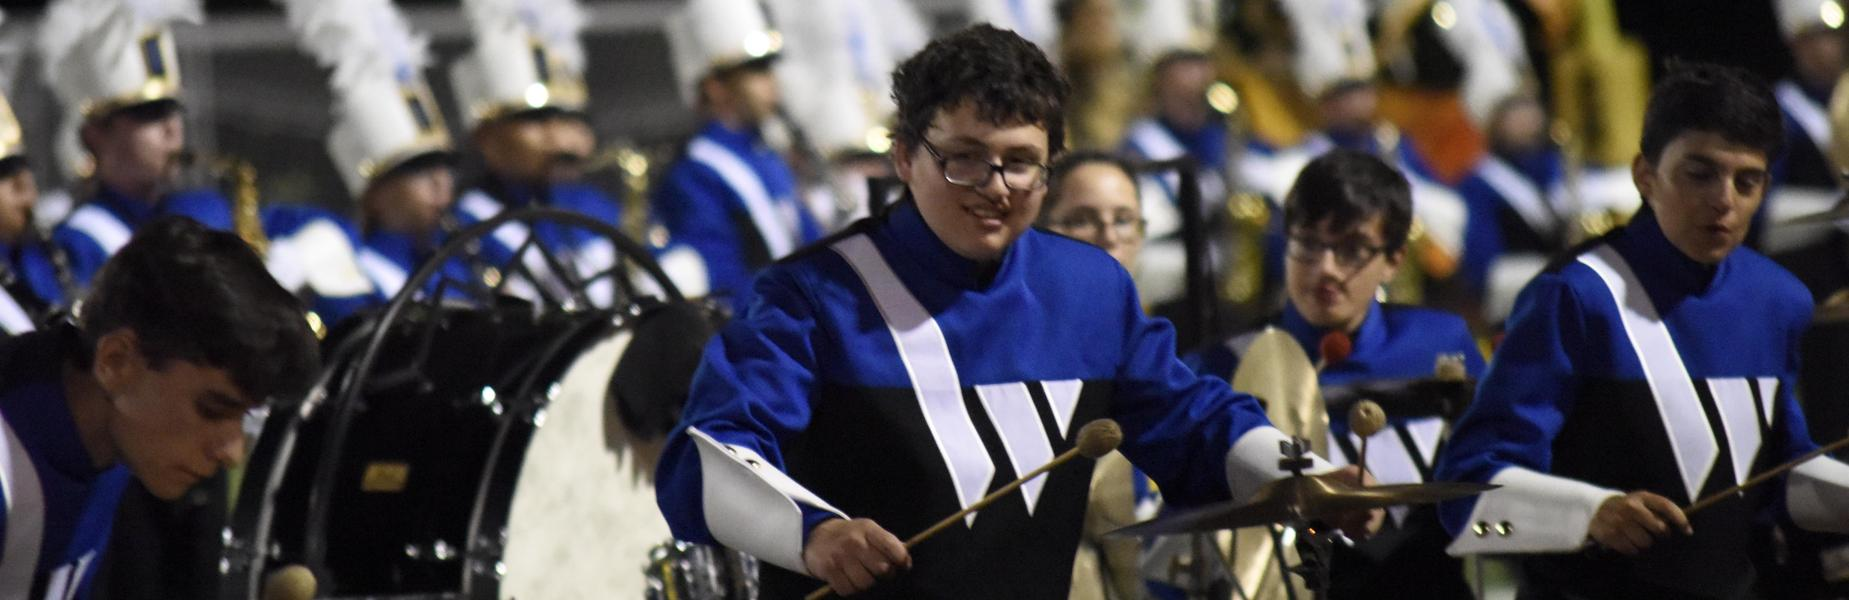 Percussionist Ian Gurland and fellow Westfield High School marching band members participate in the 41st annual Superchief Band Festival in Piscataway on 9/29/2018.